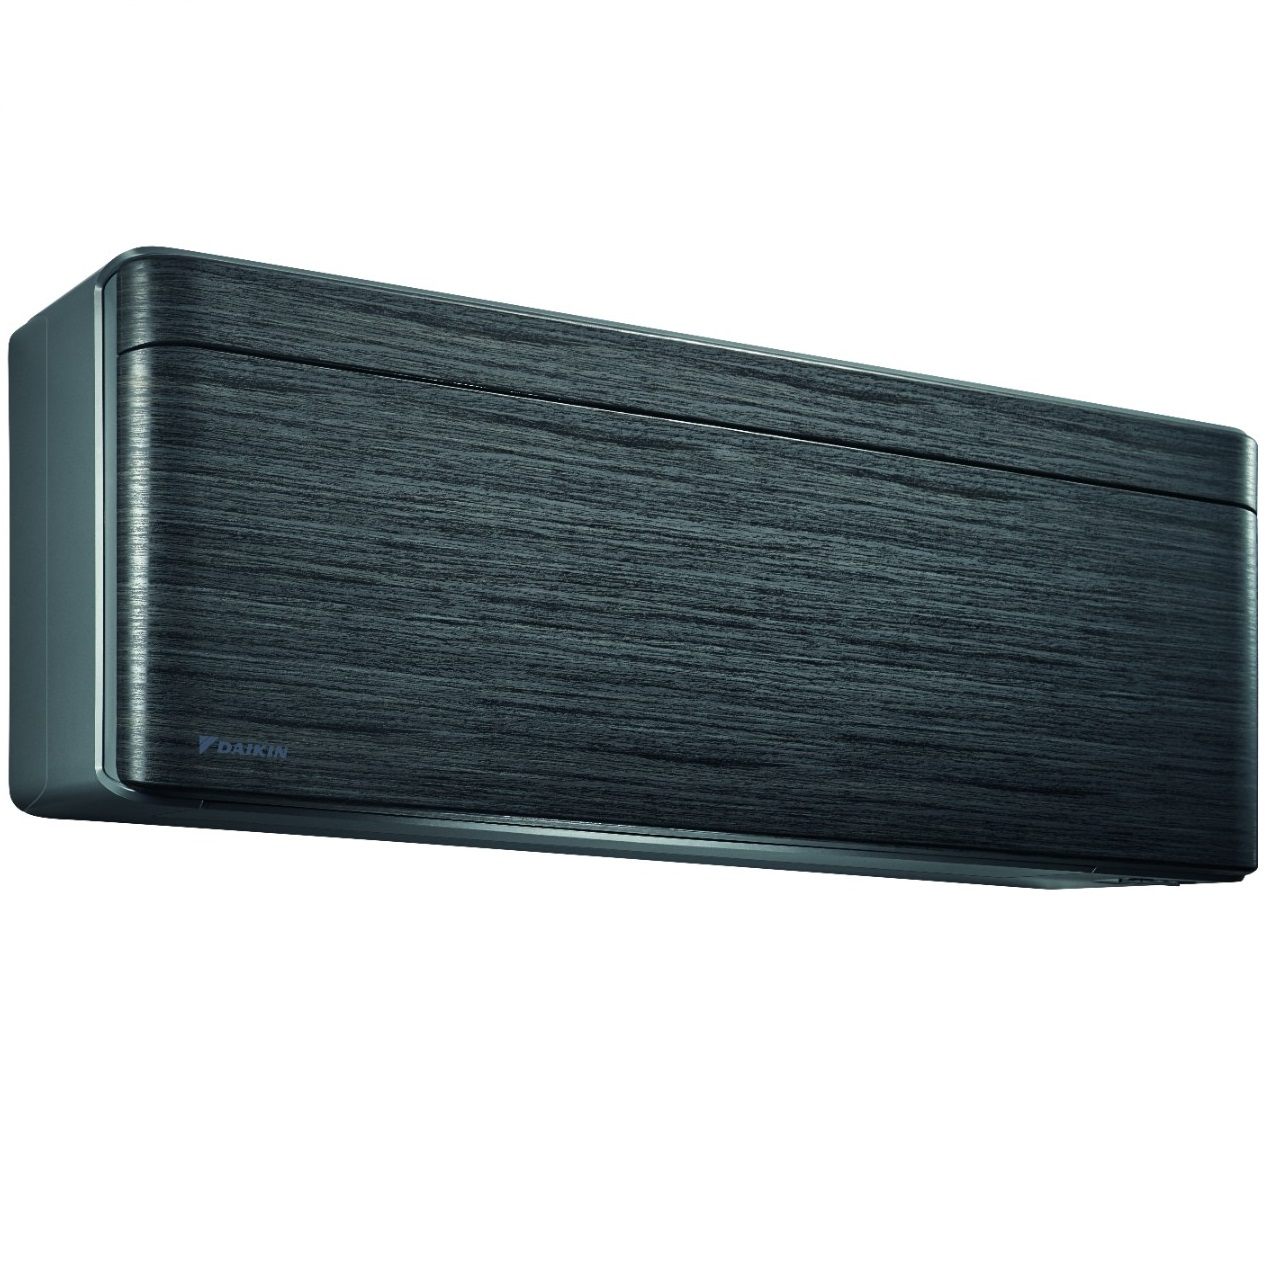 Daikin klima uređaj FTXA20AT/RXA20A STYLISH BLACKWOOD - Inelektronik